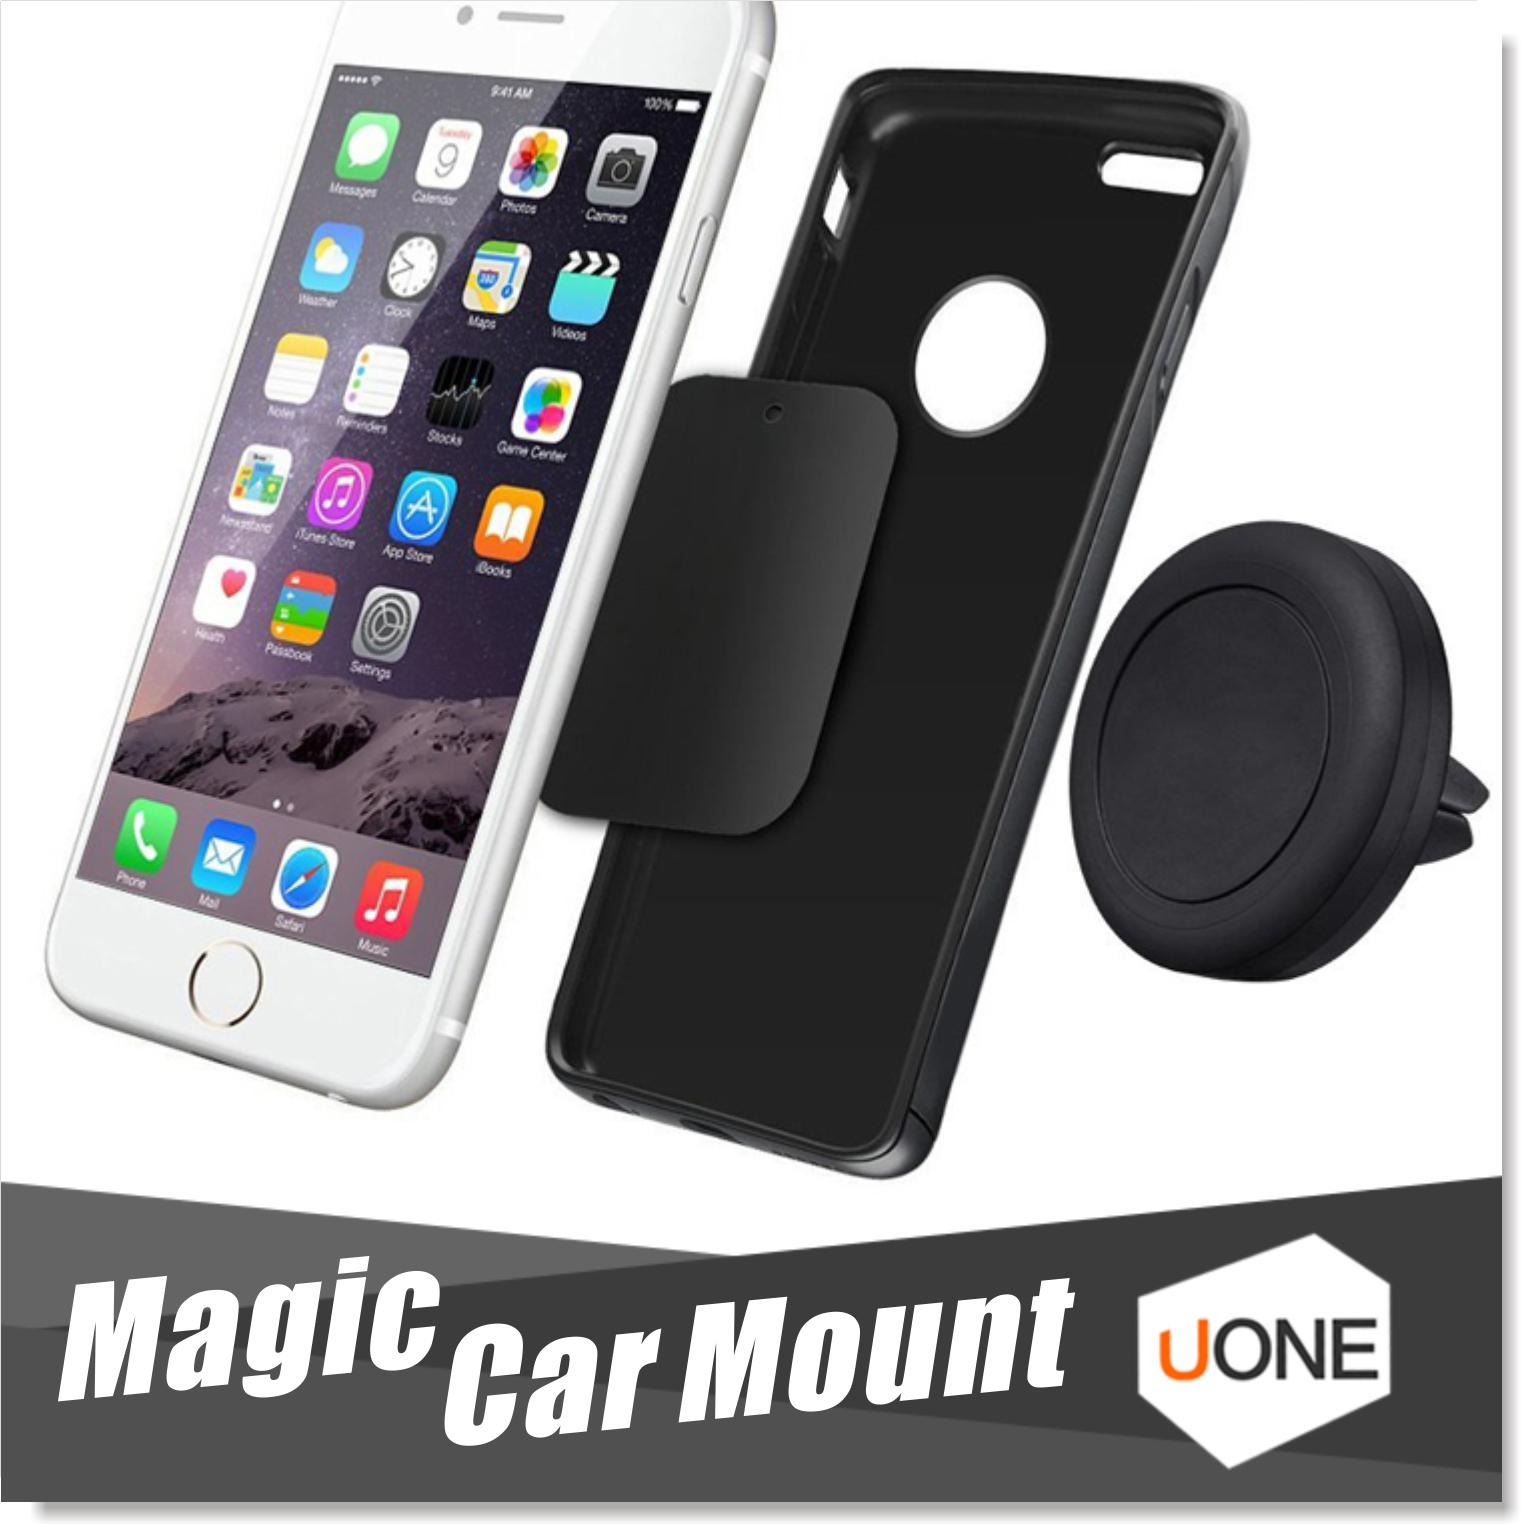 Car mount air vent magnetic universal car mount phone holder for iphone 6 6s one step mounting reinforced magnet easier safer driving cell phone car holder